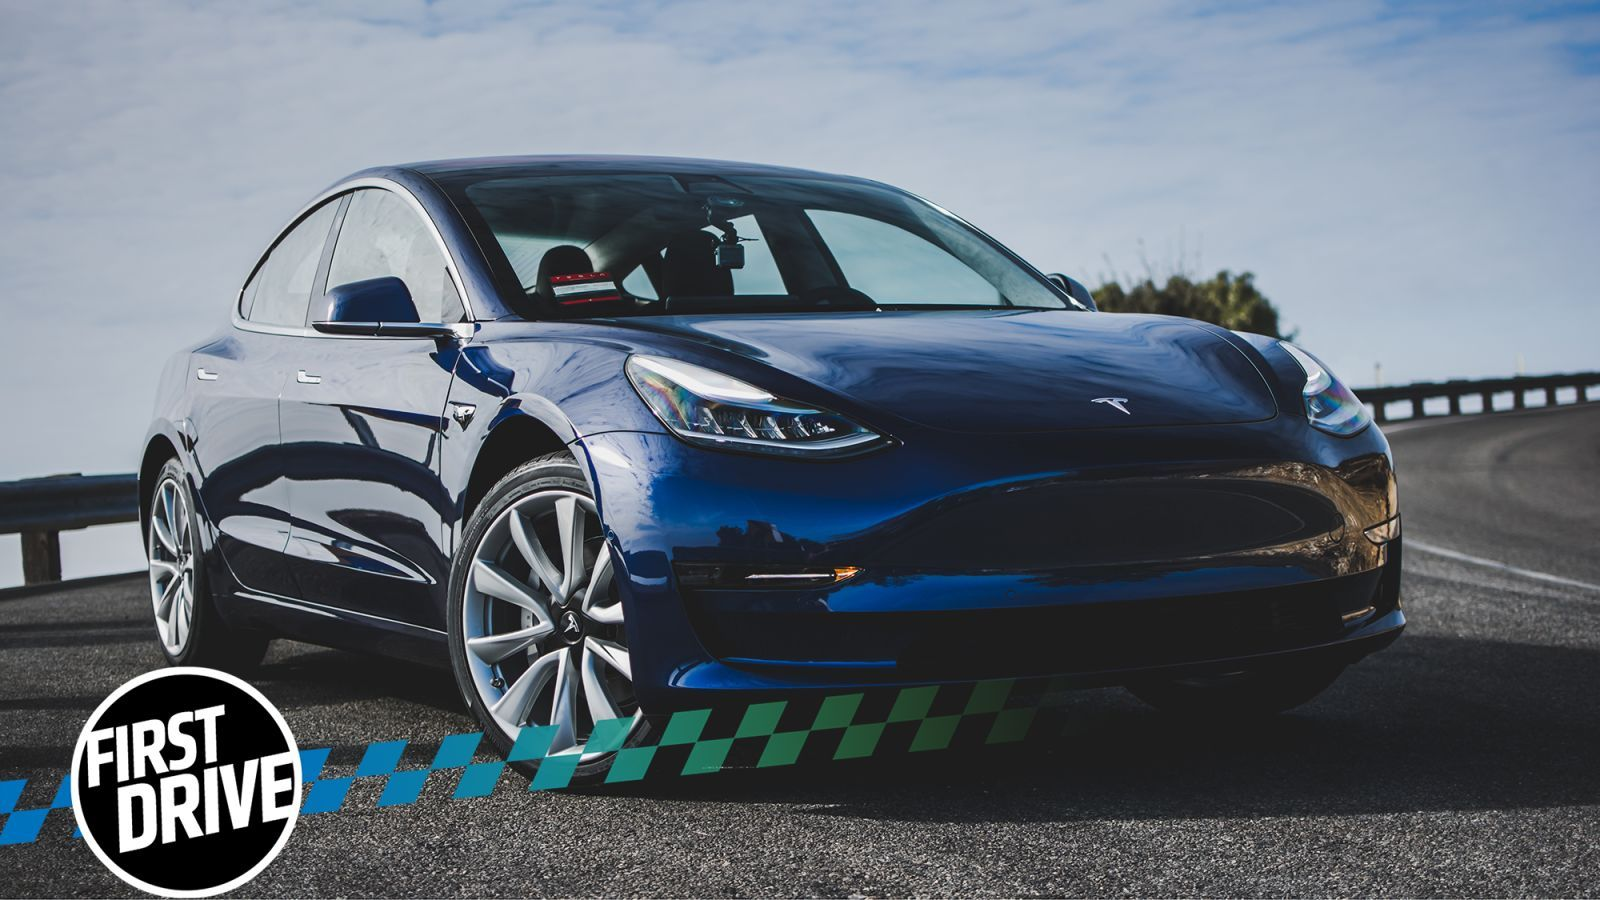 Jalopnik The Tesla Model 3 Makes The Future Feel Normalhttps